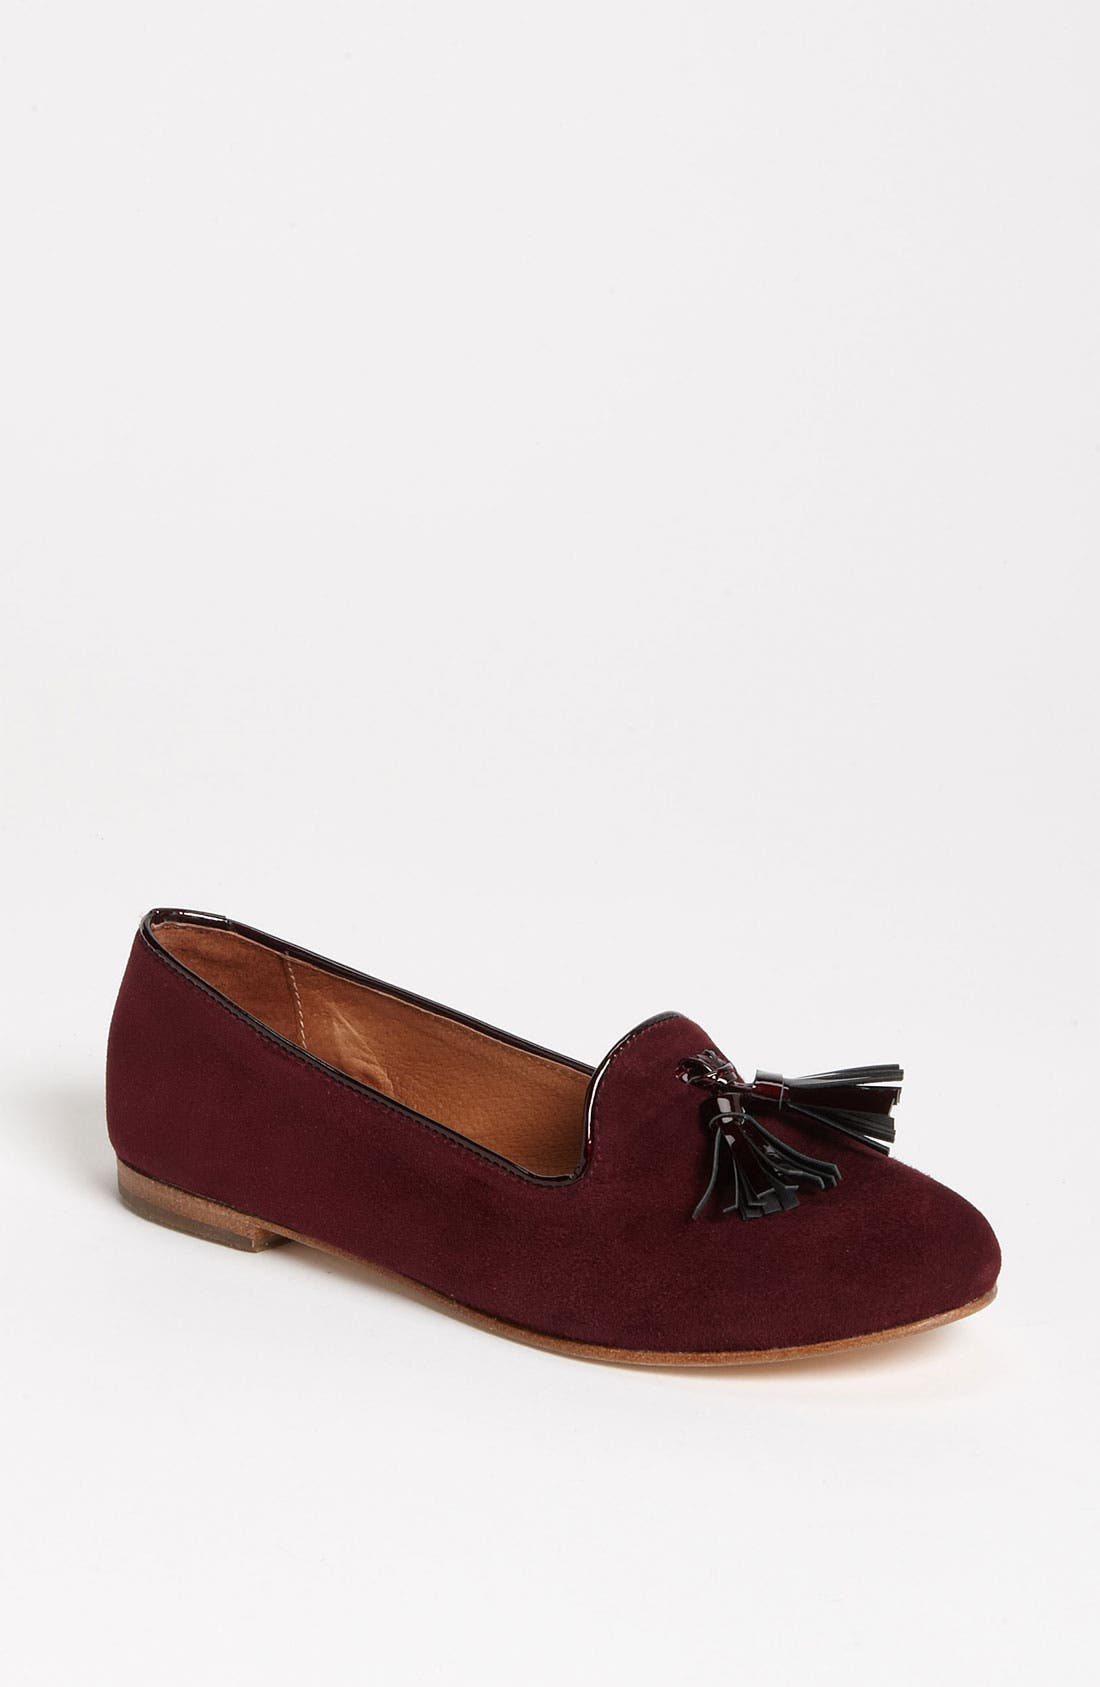 Alternate Image 1 Selected - Steve Madden 'Chaufur' Flat